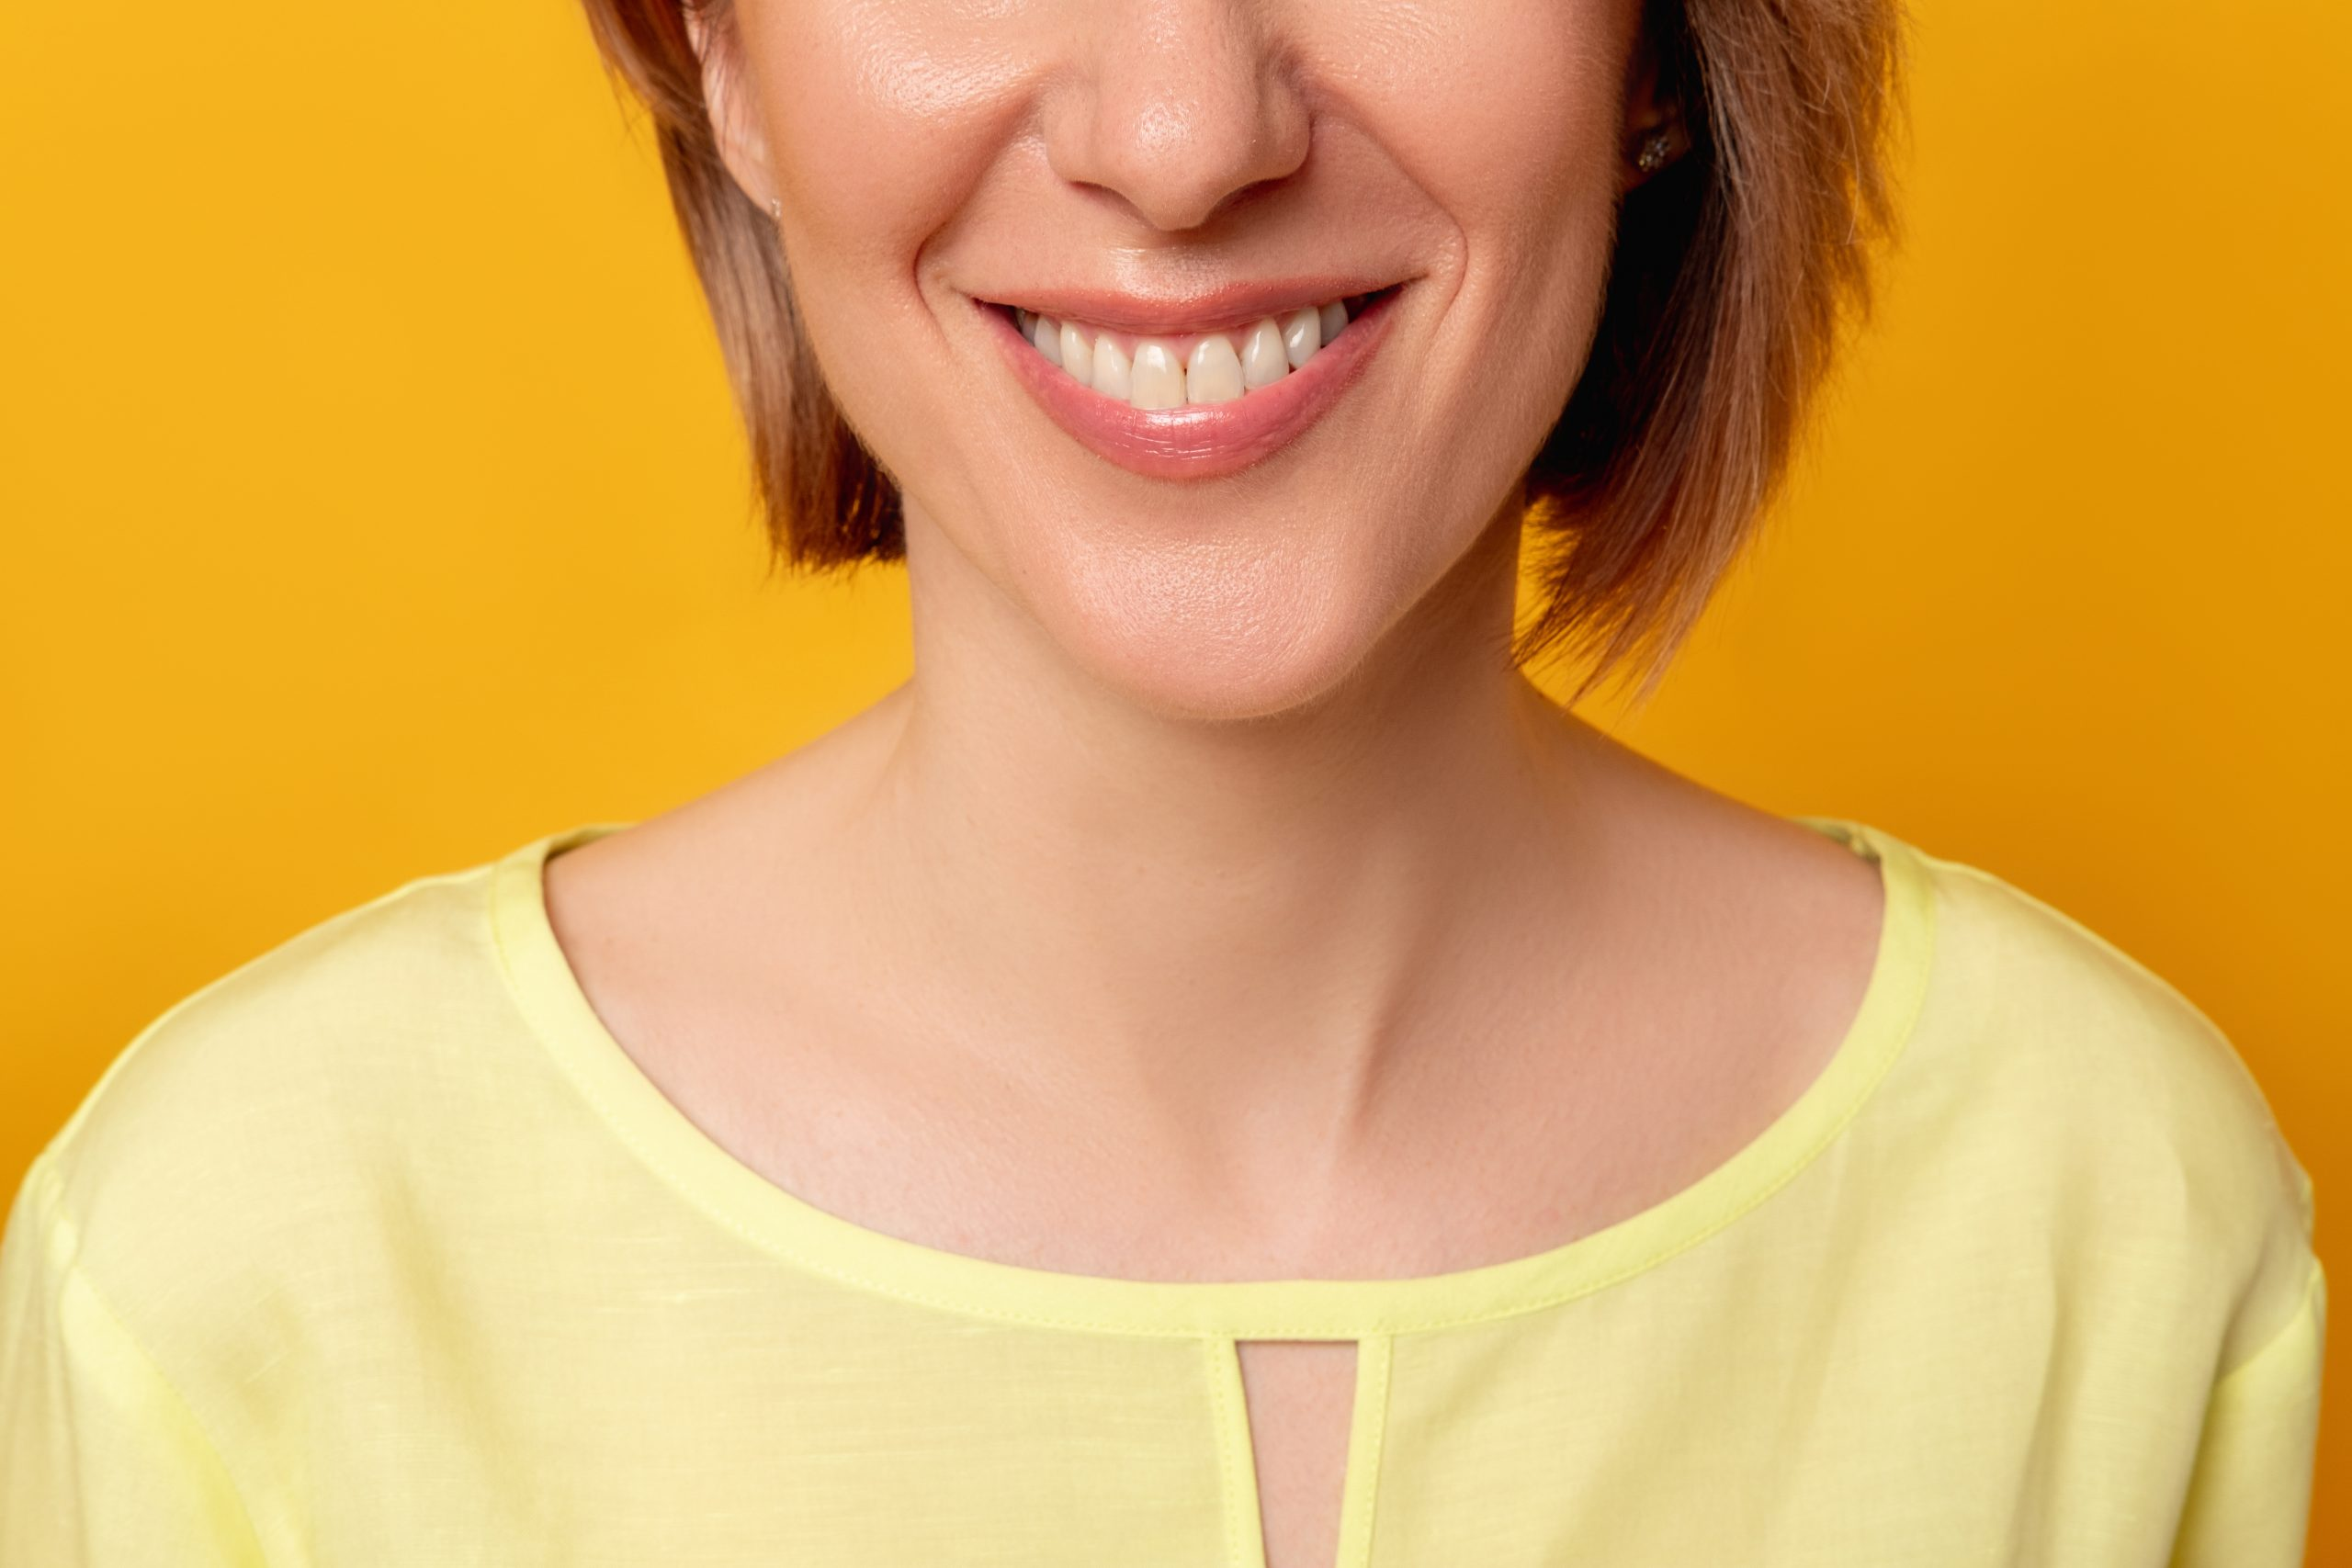 Toothy smile. Dental health. Lip augmentation. Female beauty wellness. Cropped portrait of happy mature woman face with positive emotion isolated on orange background.